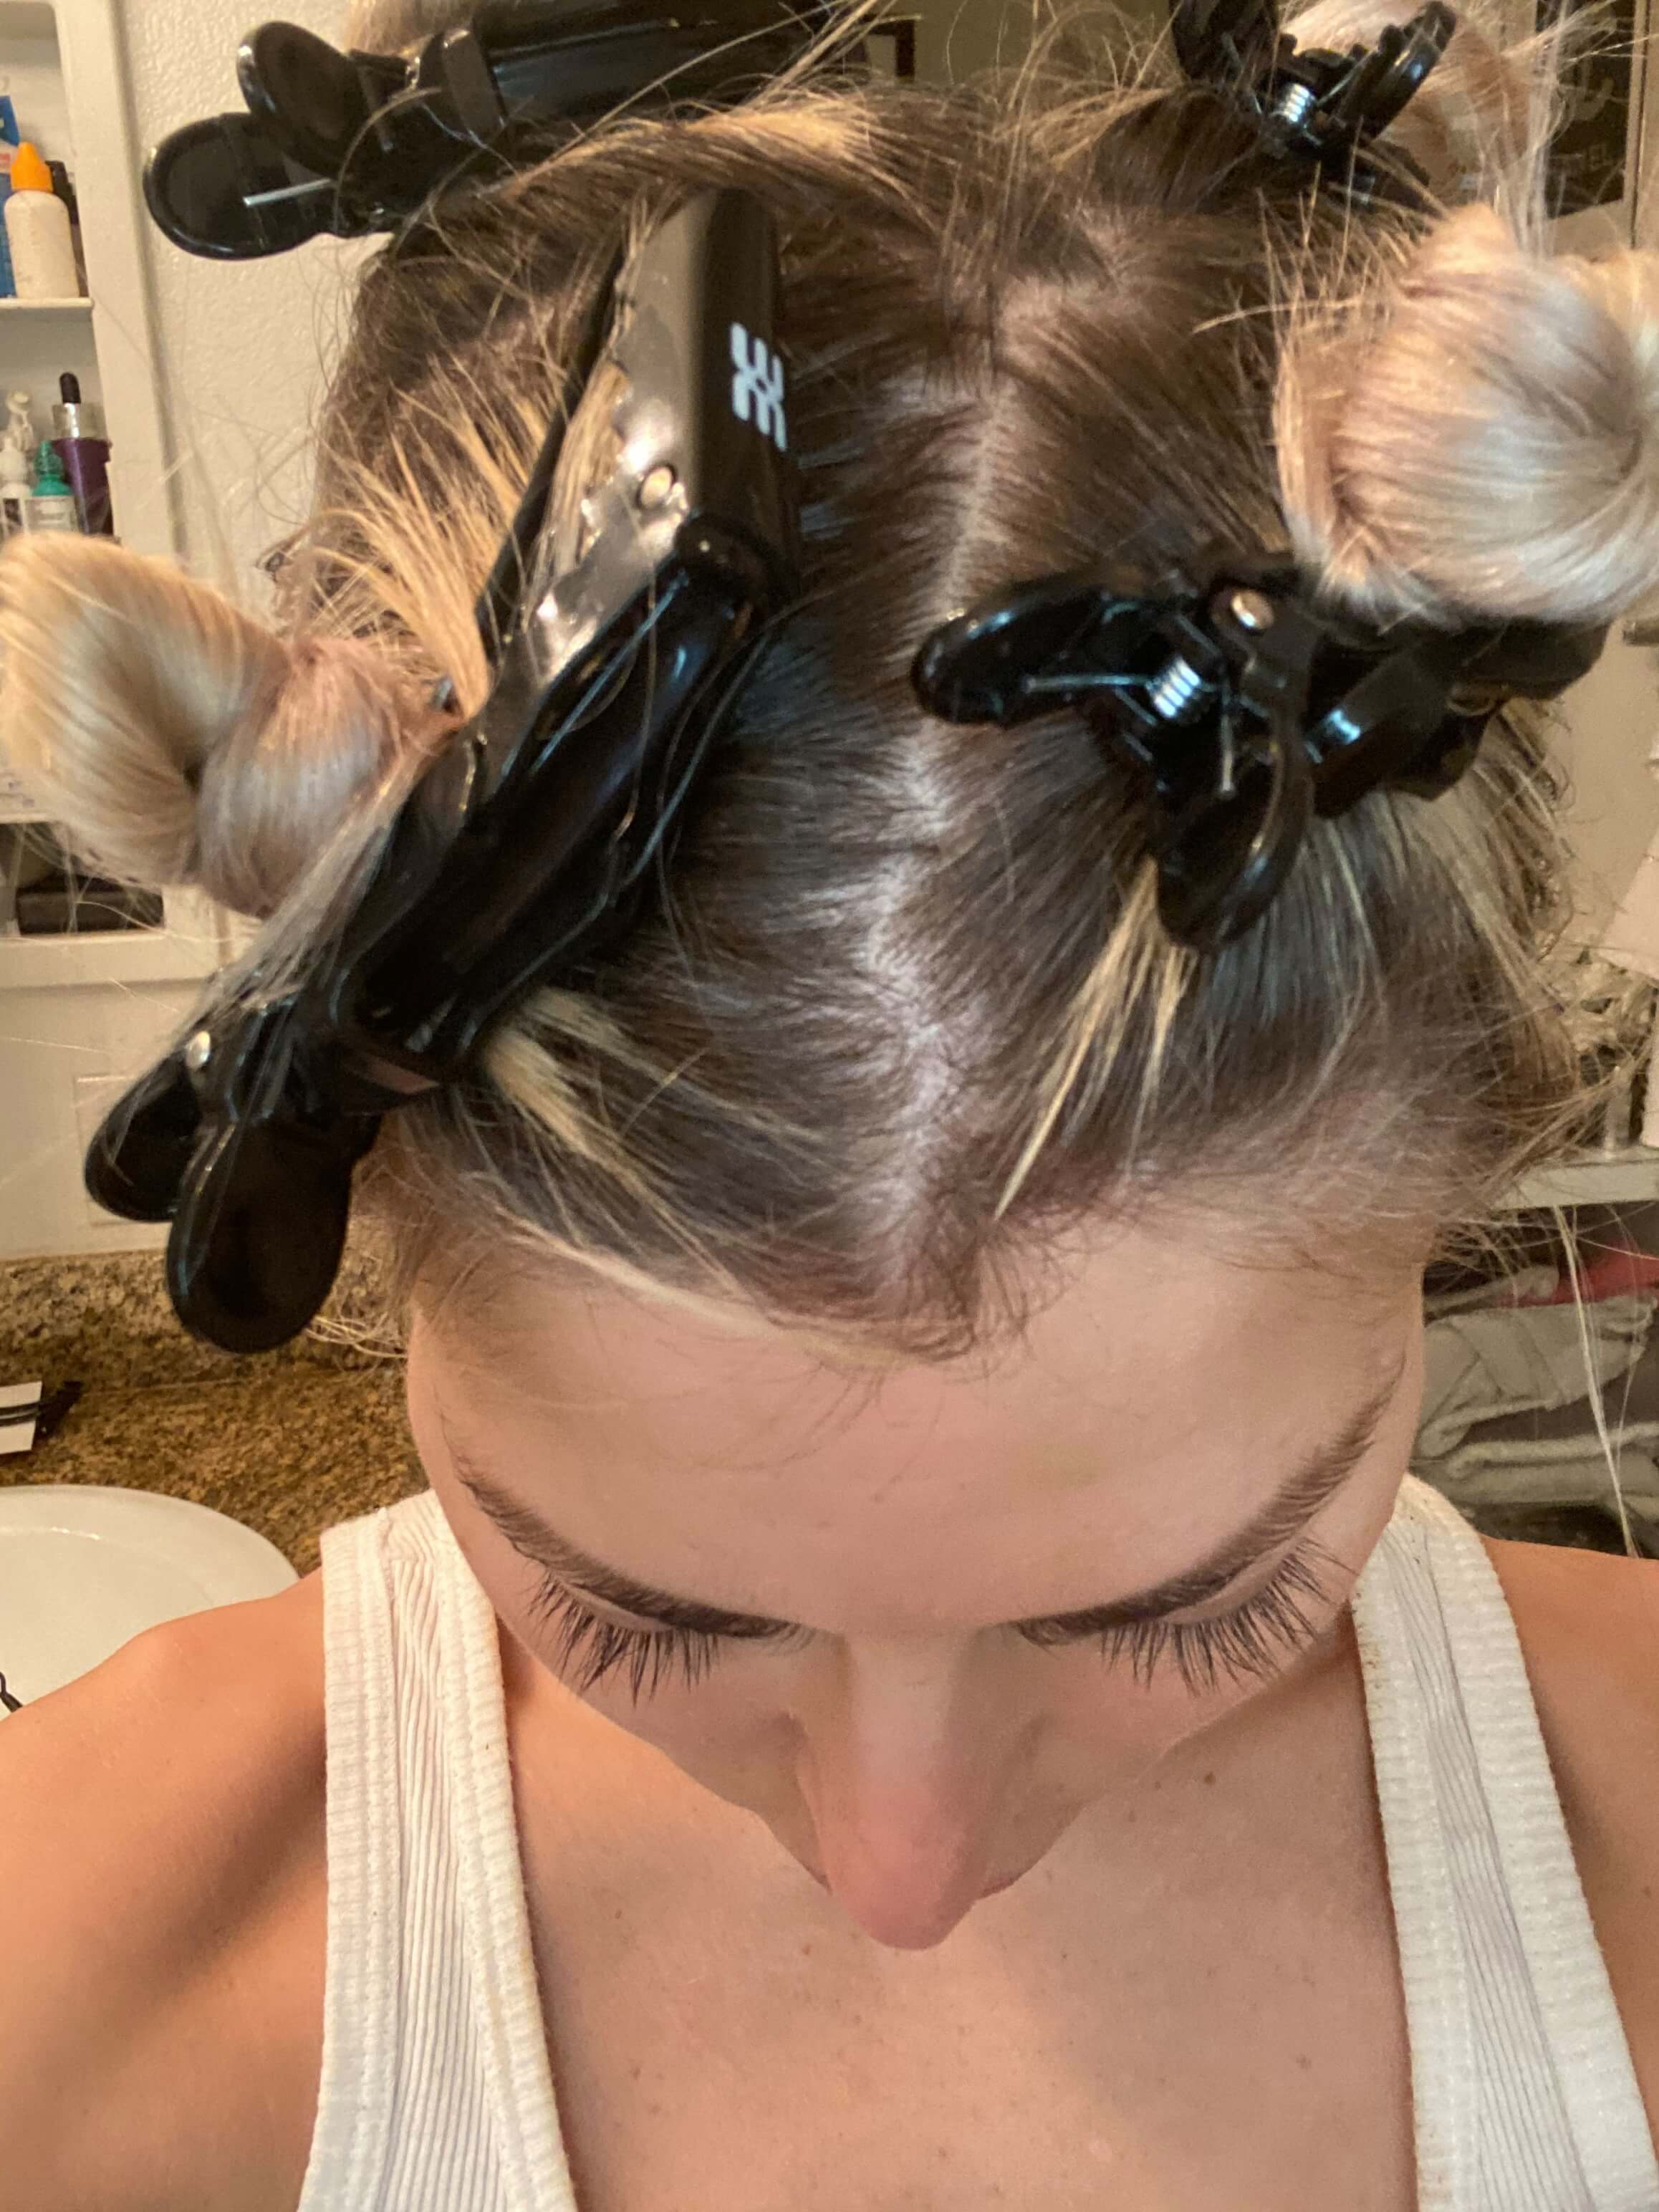 Hair all tied up neatly